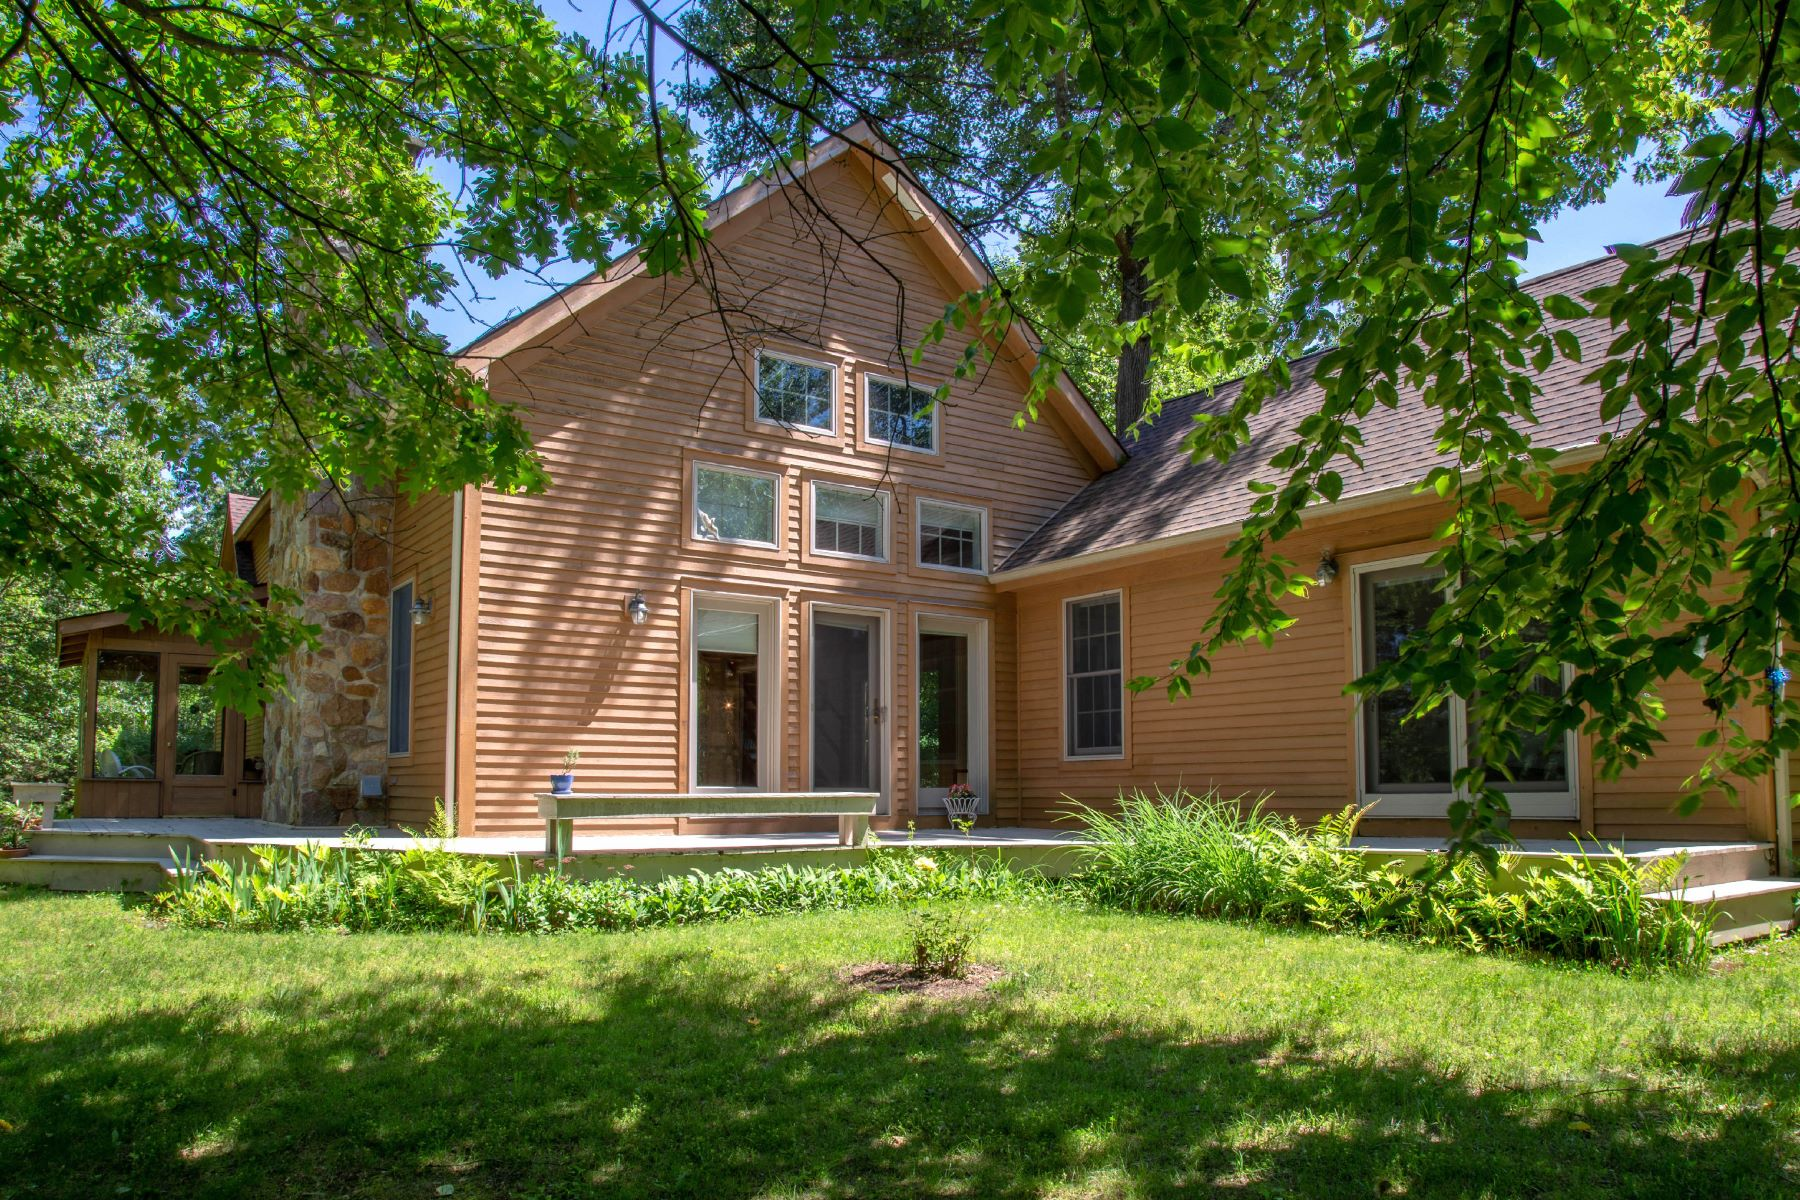 Single Family Homes for Active at Taghkanic Creek Custom Home 727 New Forge Rd Ii Ancram, New York 12502 United States